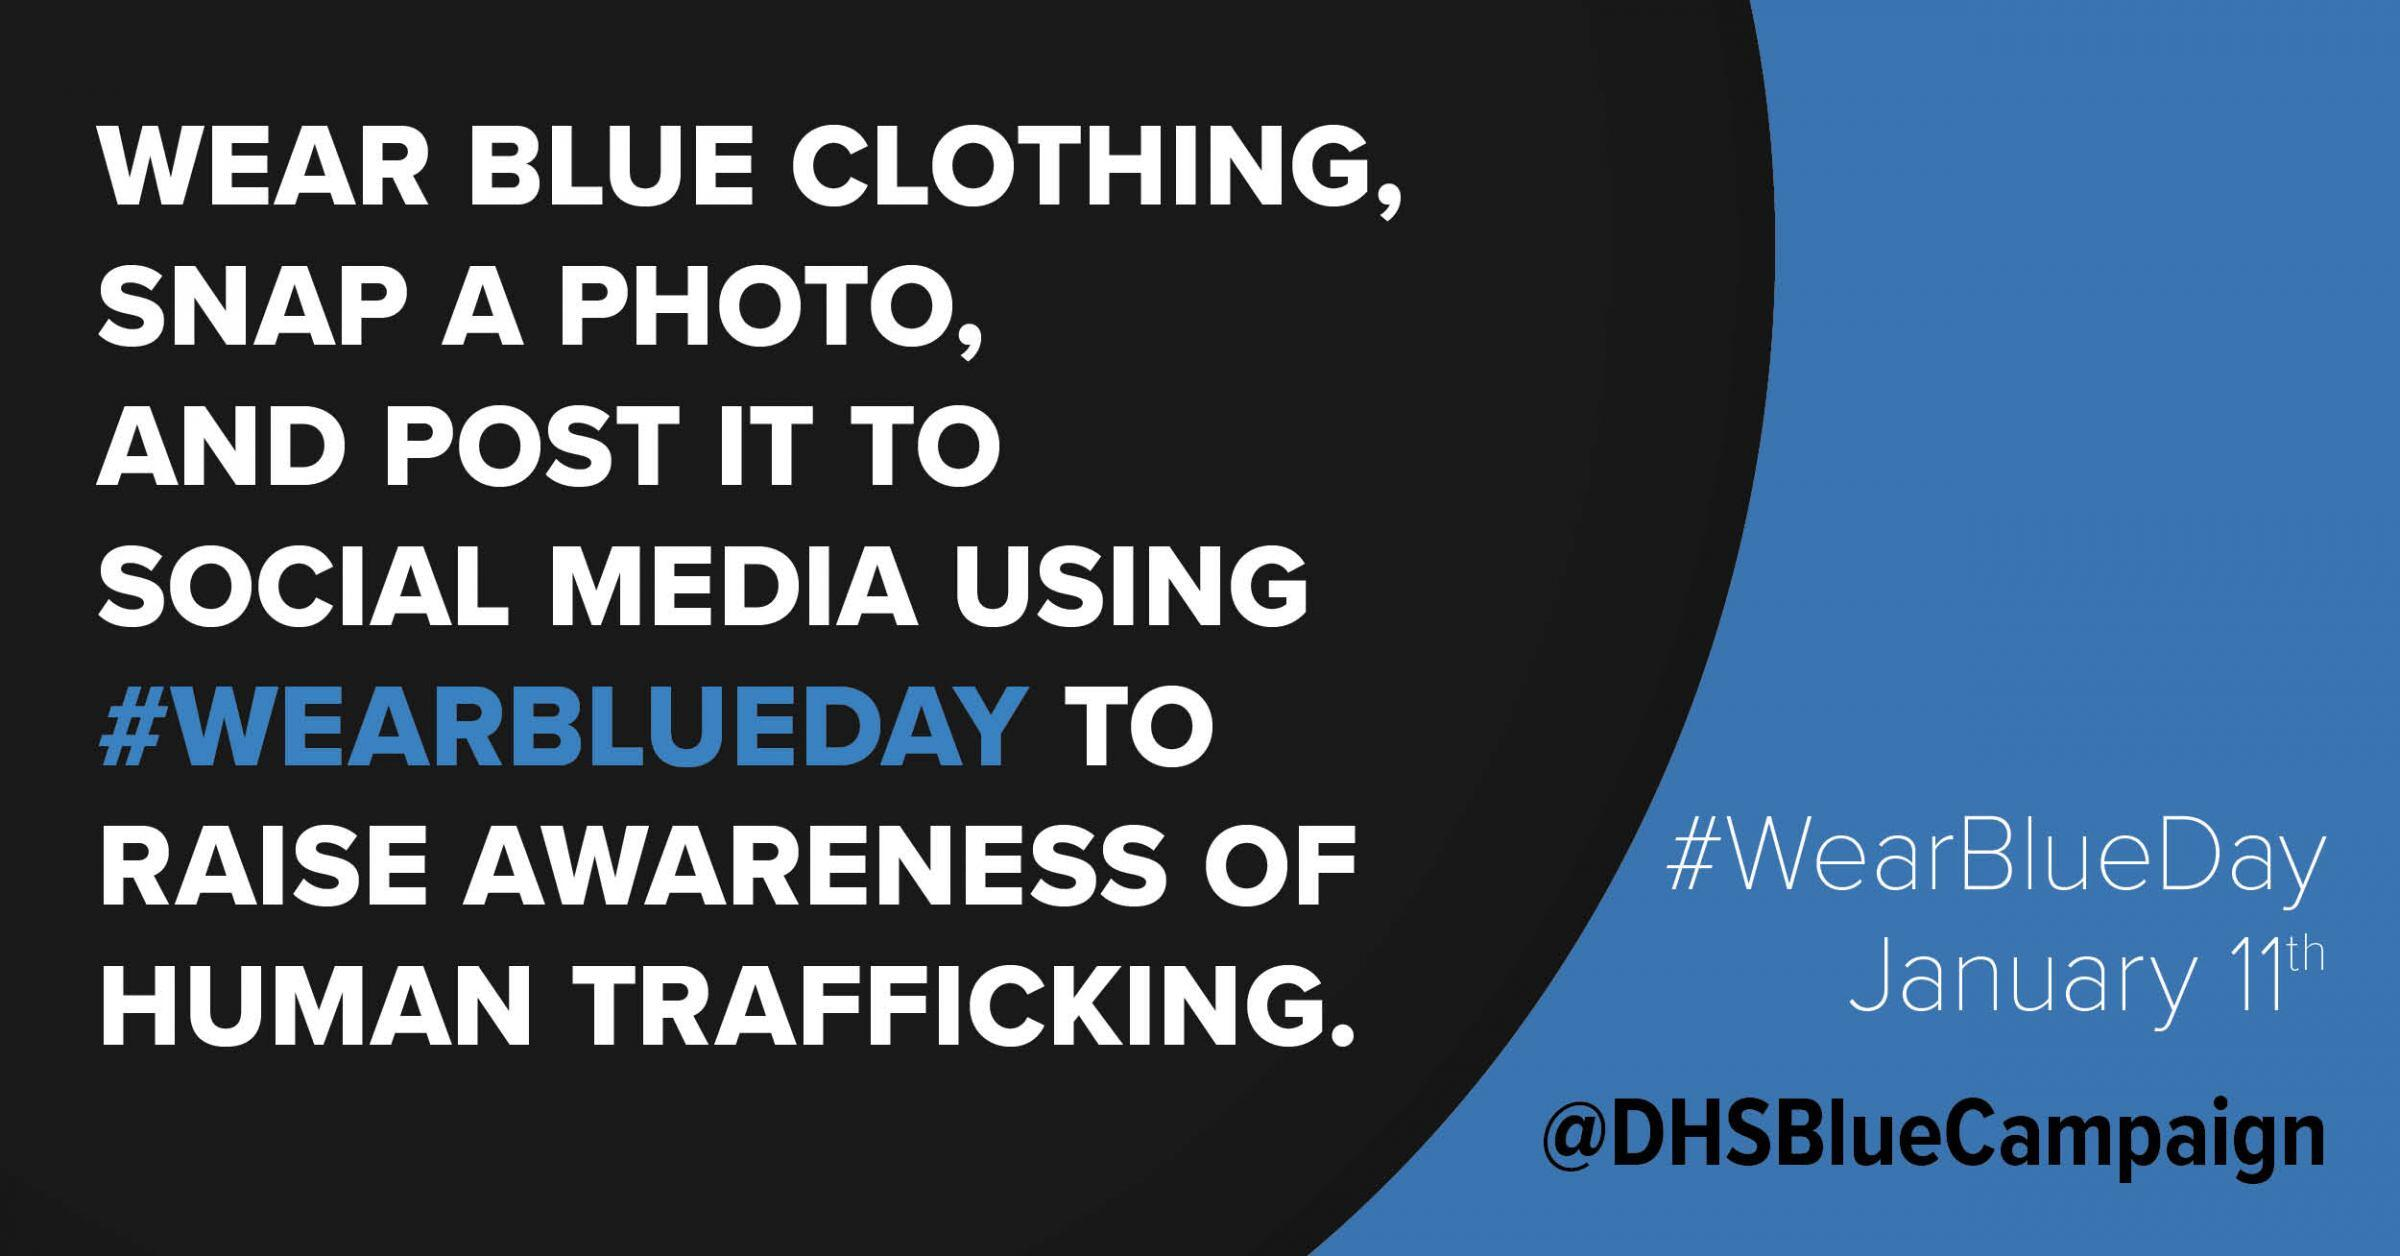 Wear blue clothing, snap a photo, and post it to social media using #WearBlueDay to raise awareness of human trafficking. #WearBlueDay: January 11 @DHSBlueCampaign